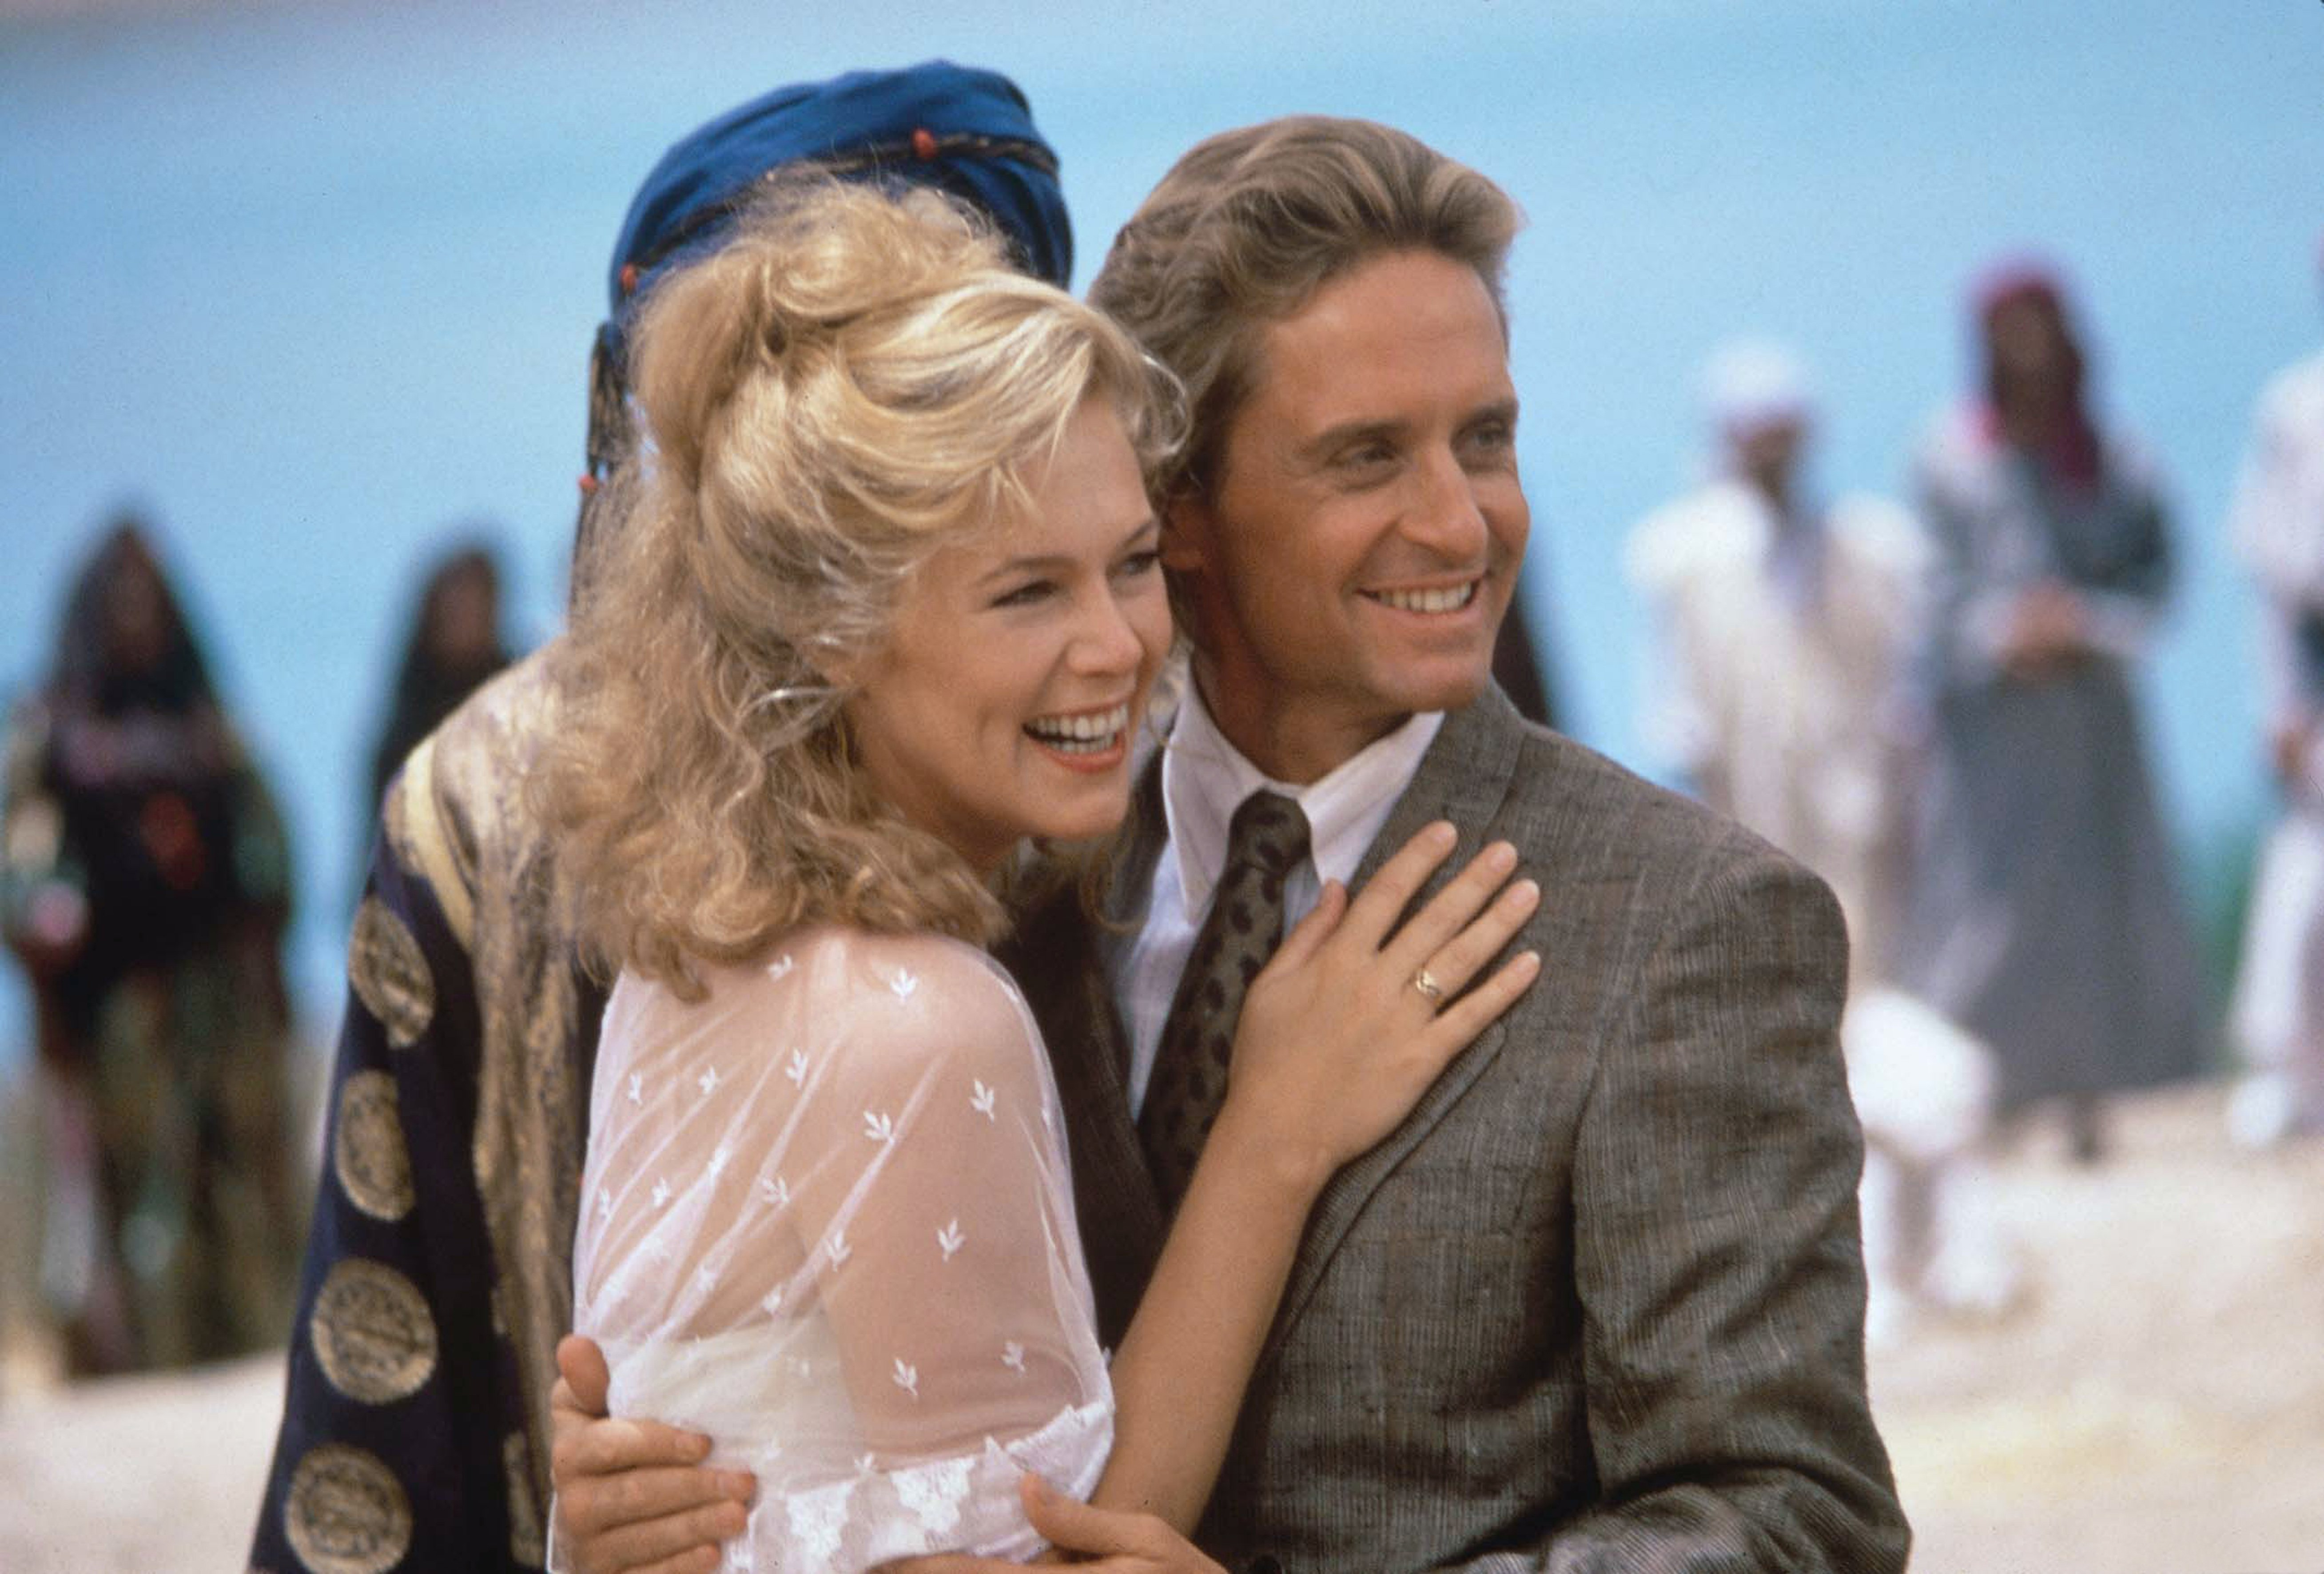 Michael Douglas and  Kathleen Turner on the set of The Jewel of the Nile directed by Lewis Teague.   Source: Getty Images